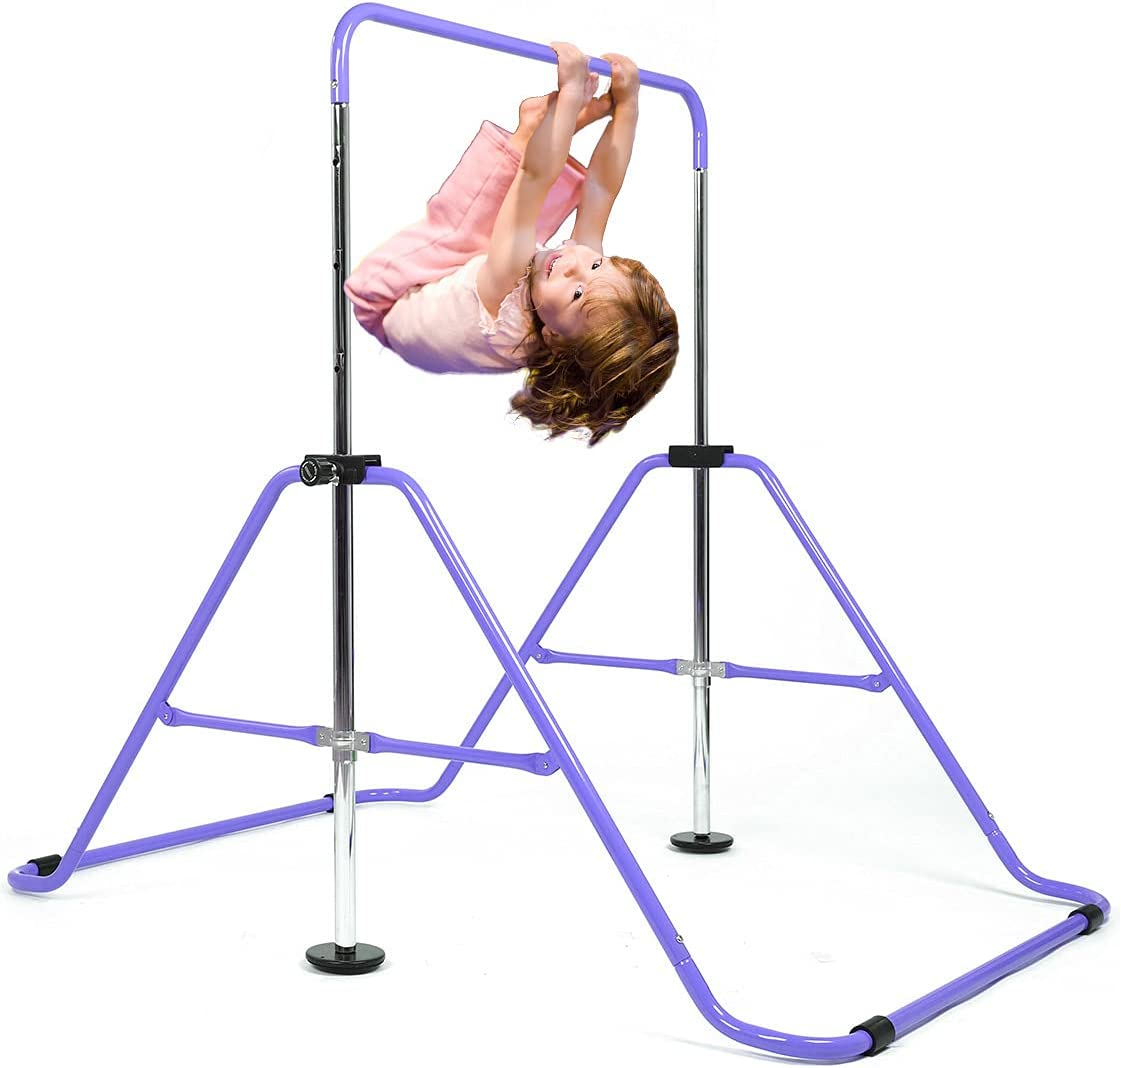 Buy DOBESTS Gymnastics Bar Kids Expandable Gymnastic Bars Equipment for Home Adjustable Height Folding Kip Junior Training Bar 3-7 Years Old Online in Indonesia. B08F4ZLX56